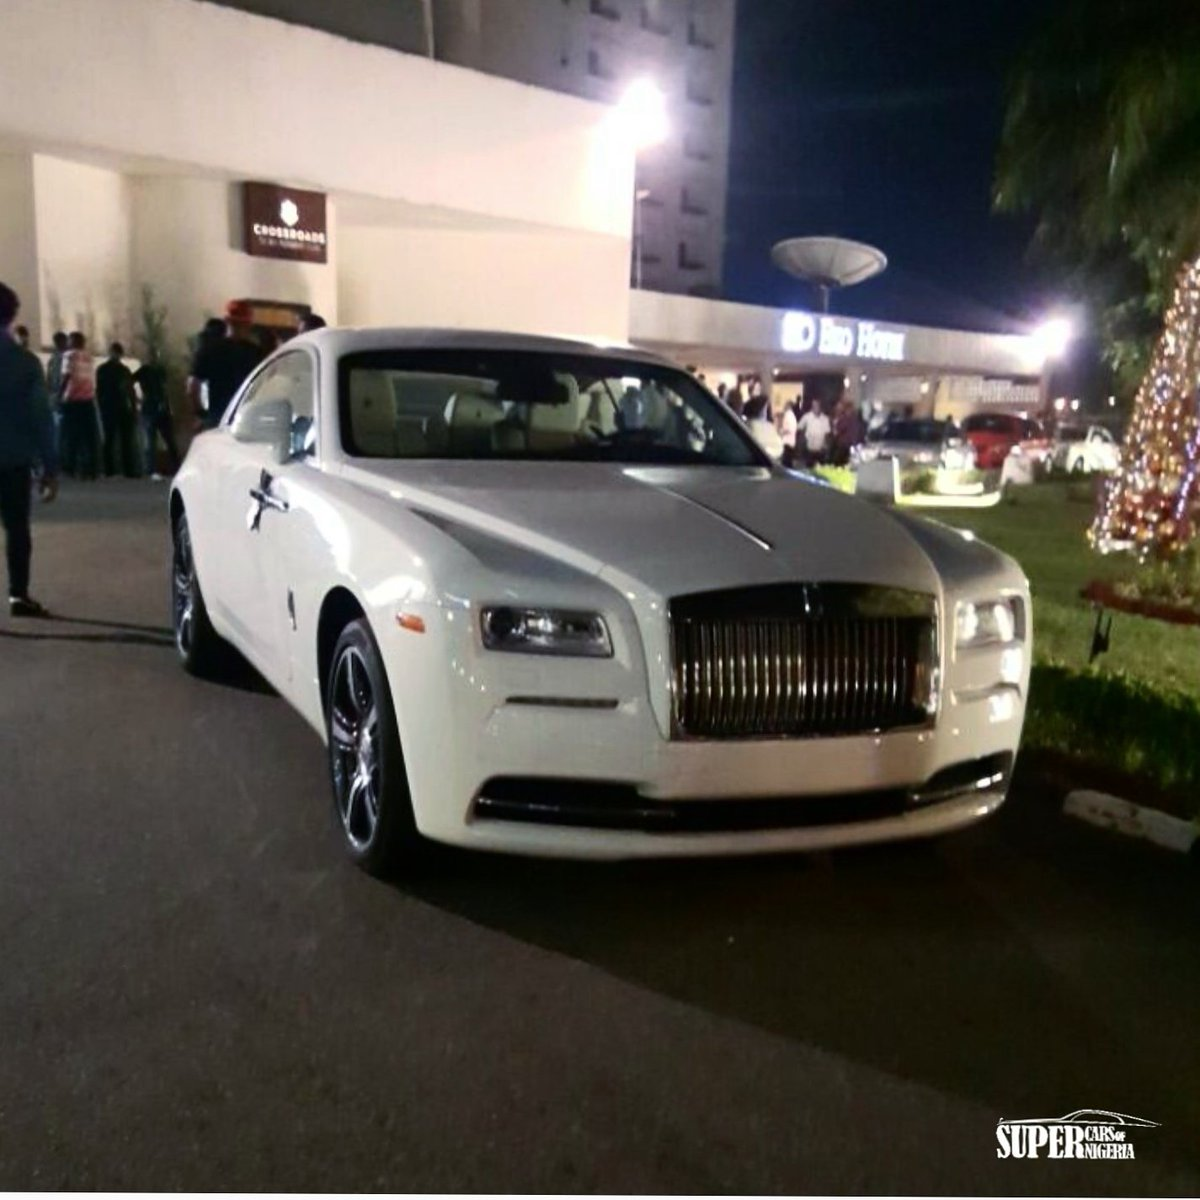 2016 Rolls Royce Wraith Camshaft: Check Out These Supercars Of Nigeria! (photos)